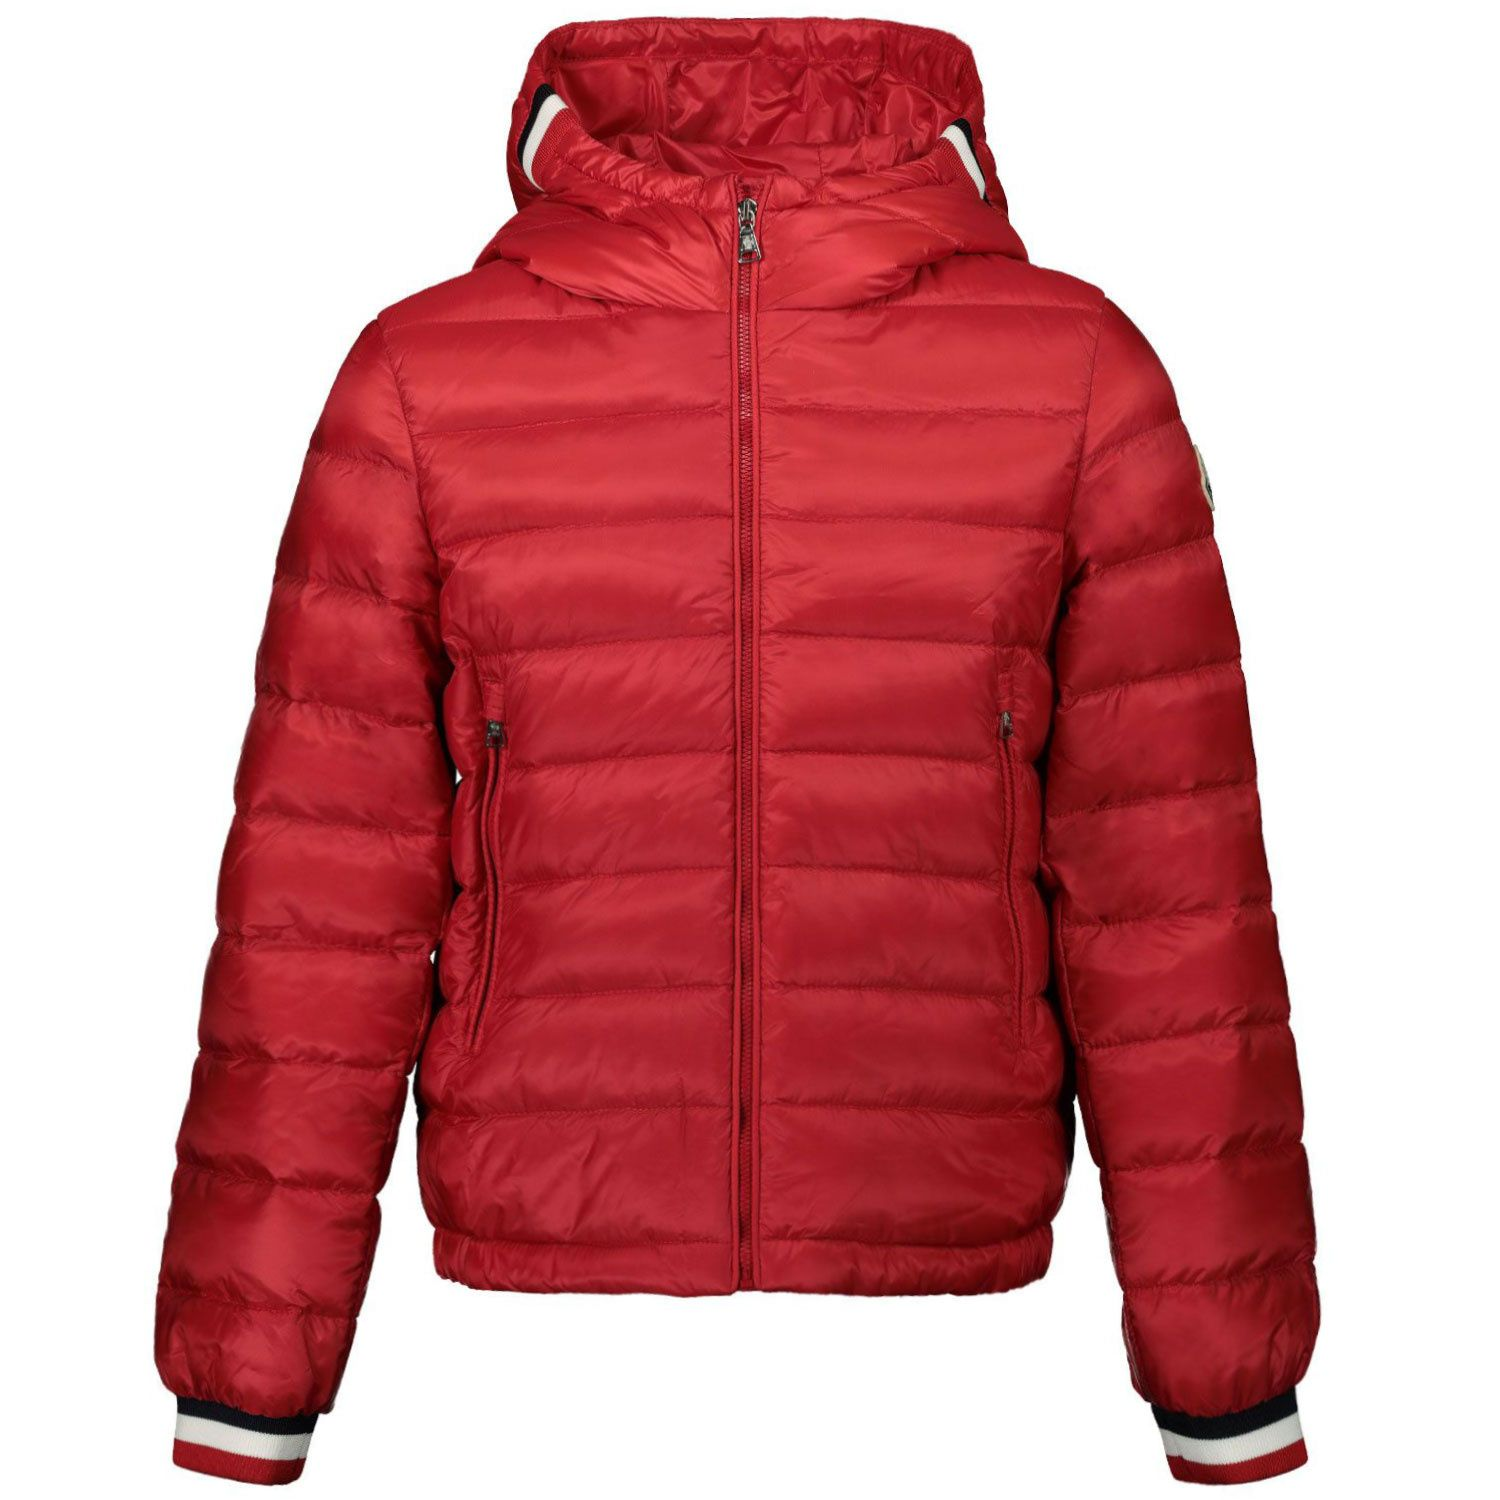 Picture of Moncler 1A11220 kids jacket red